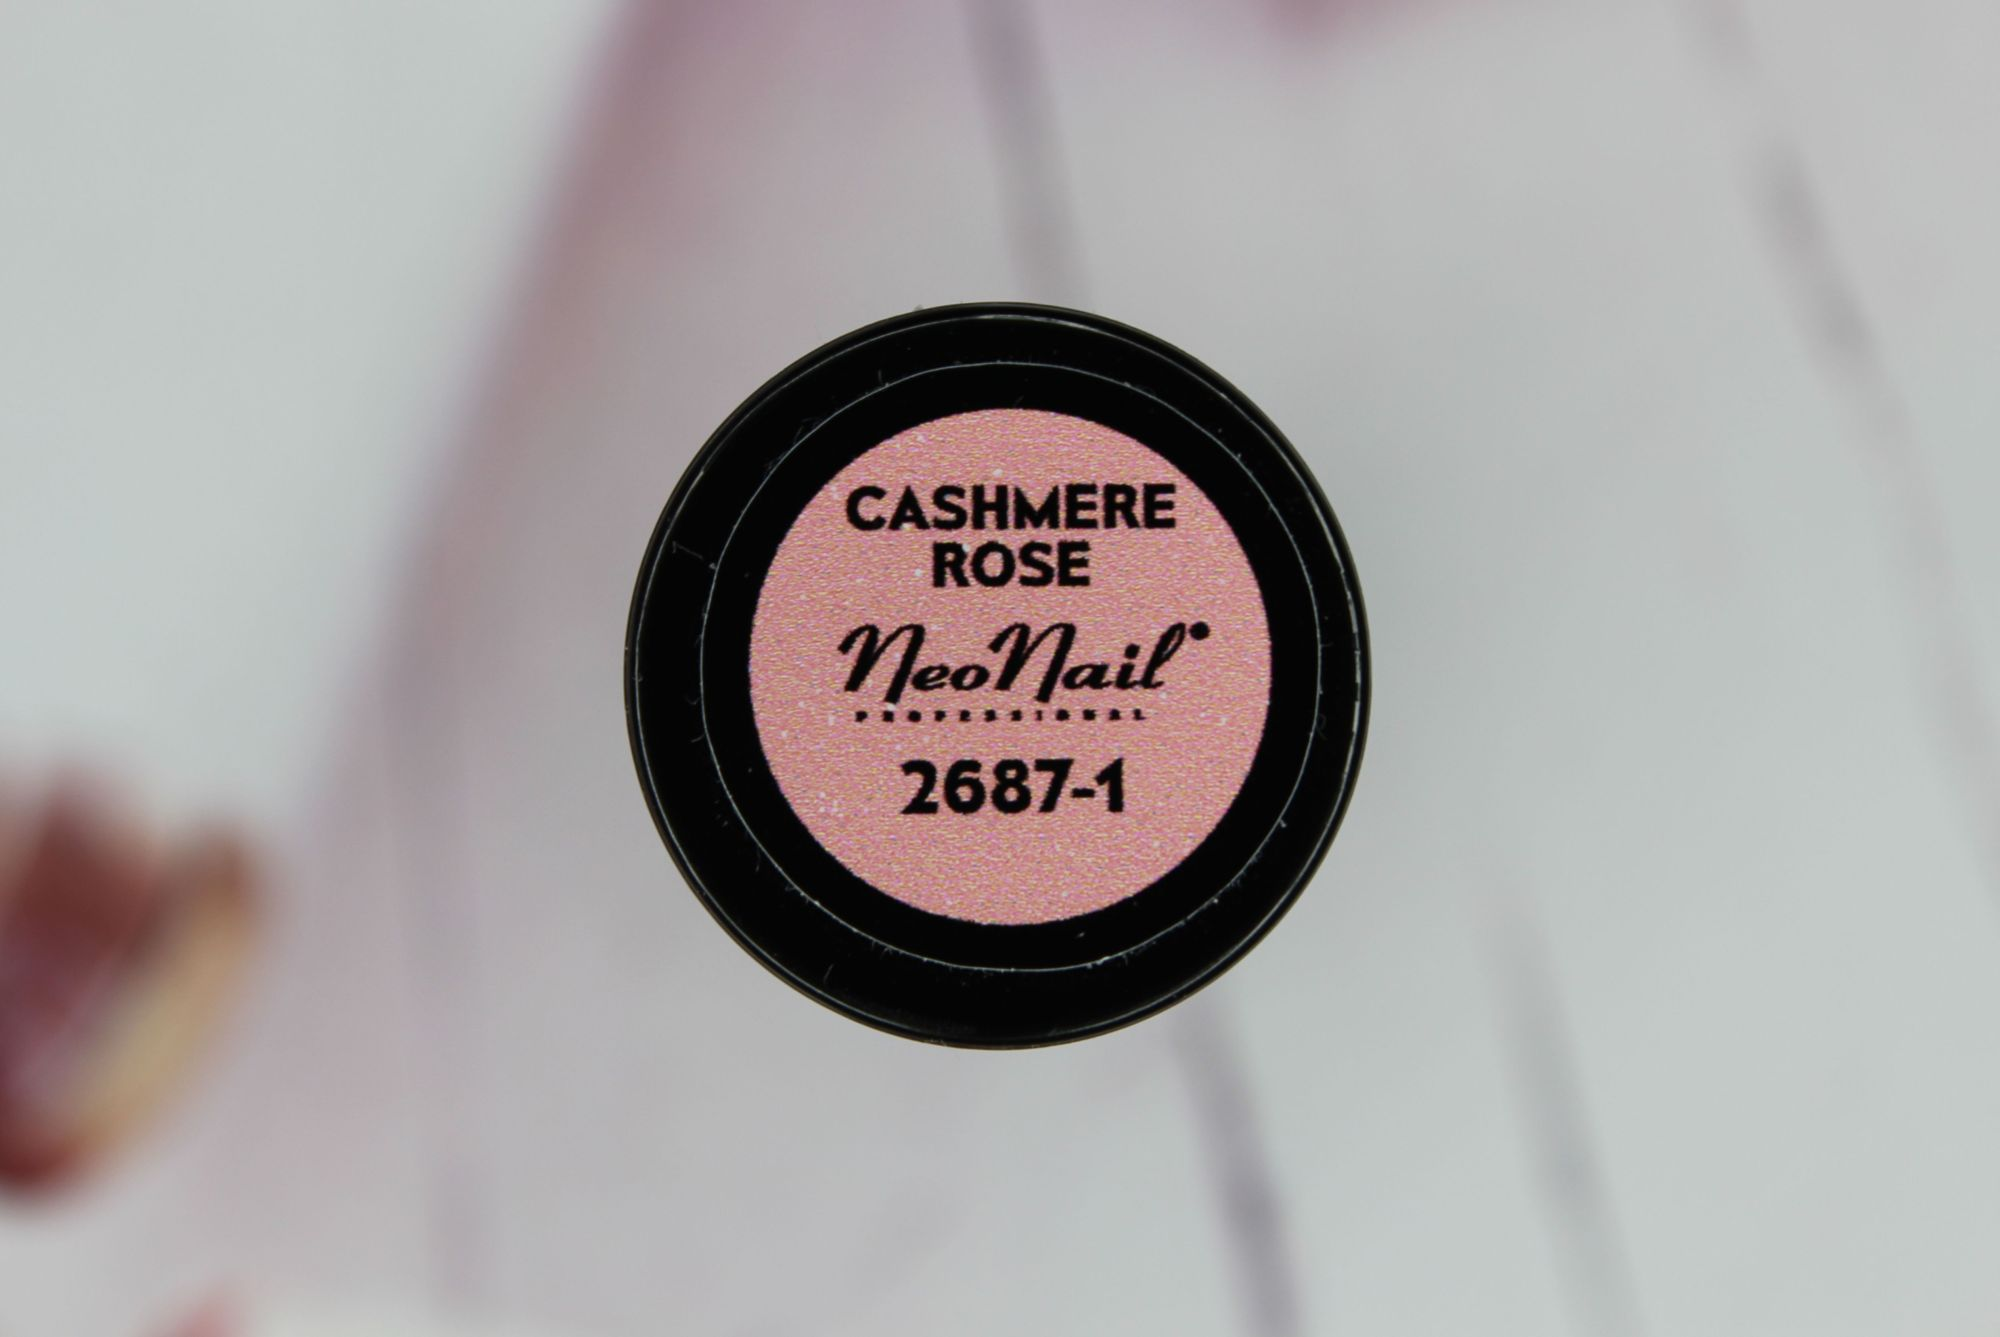 TOP 16 - NeoNail UV Gel Polish Color in Cashmere Rose 1